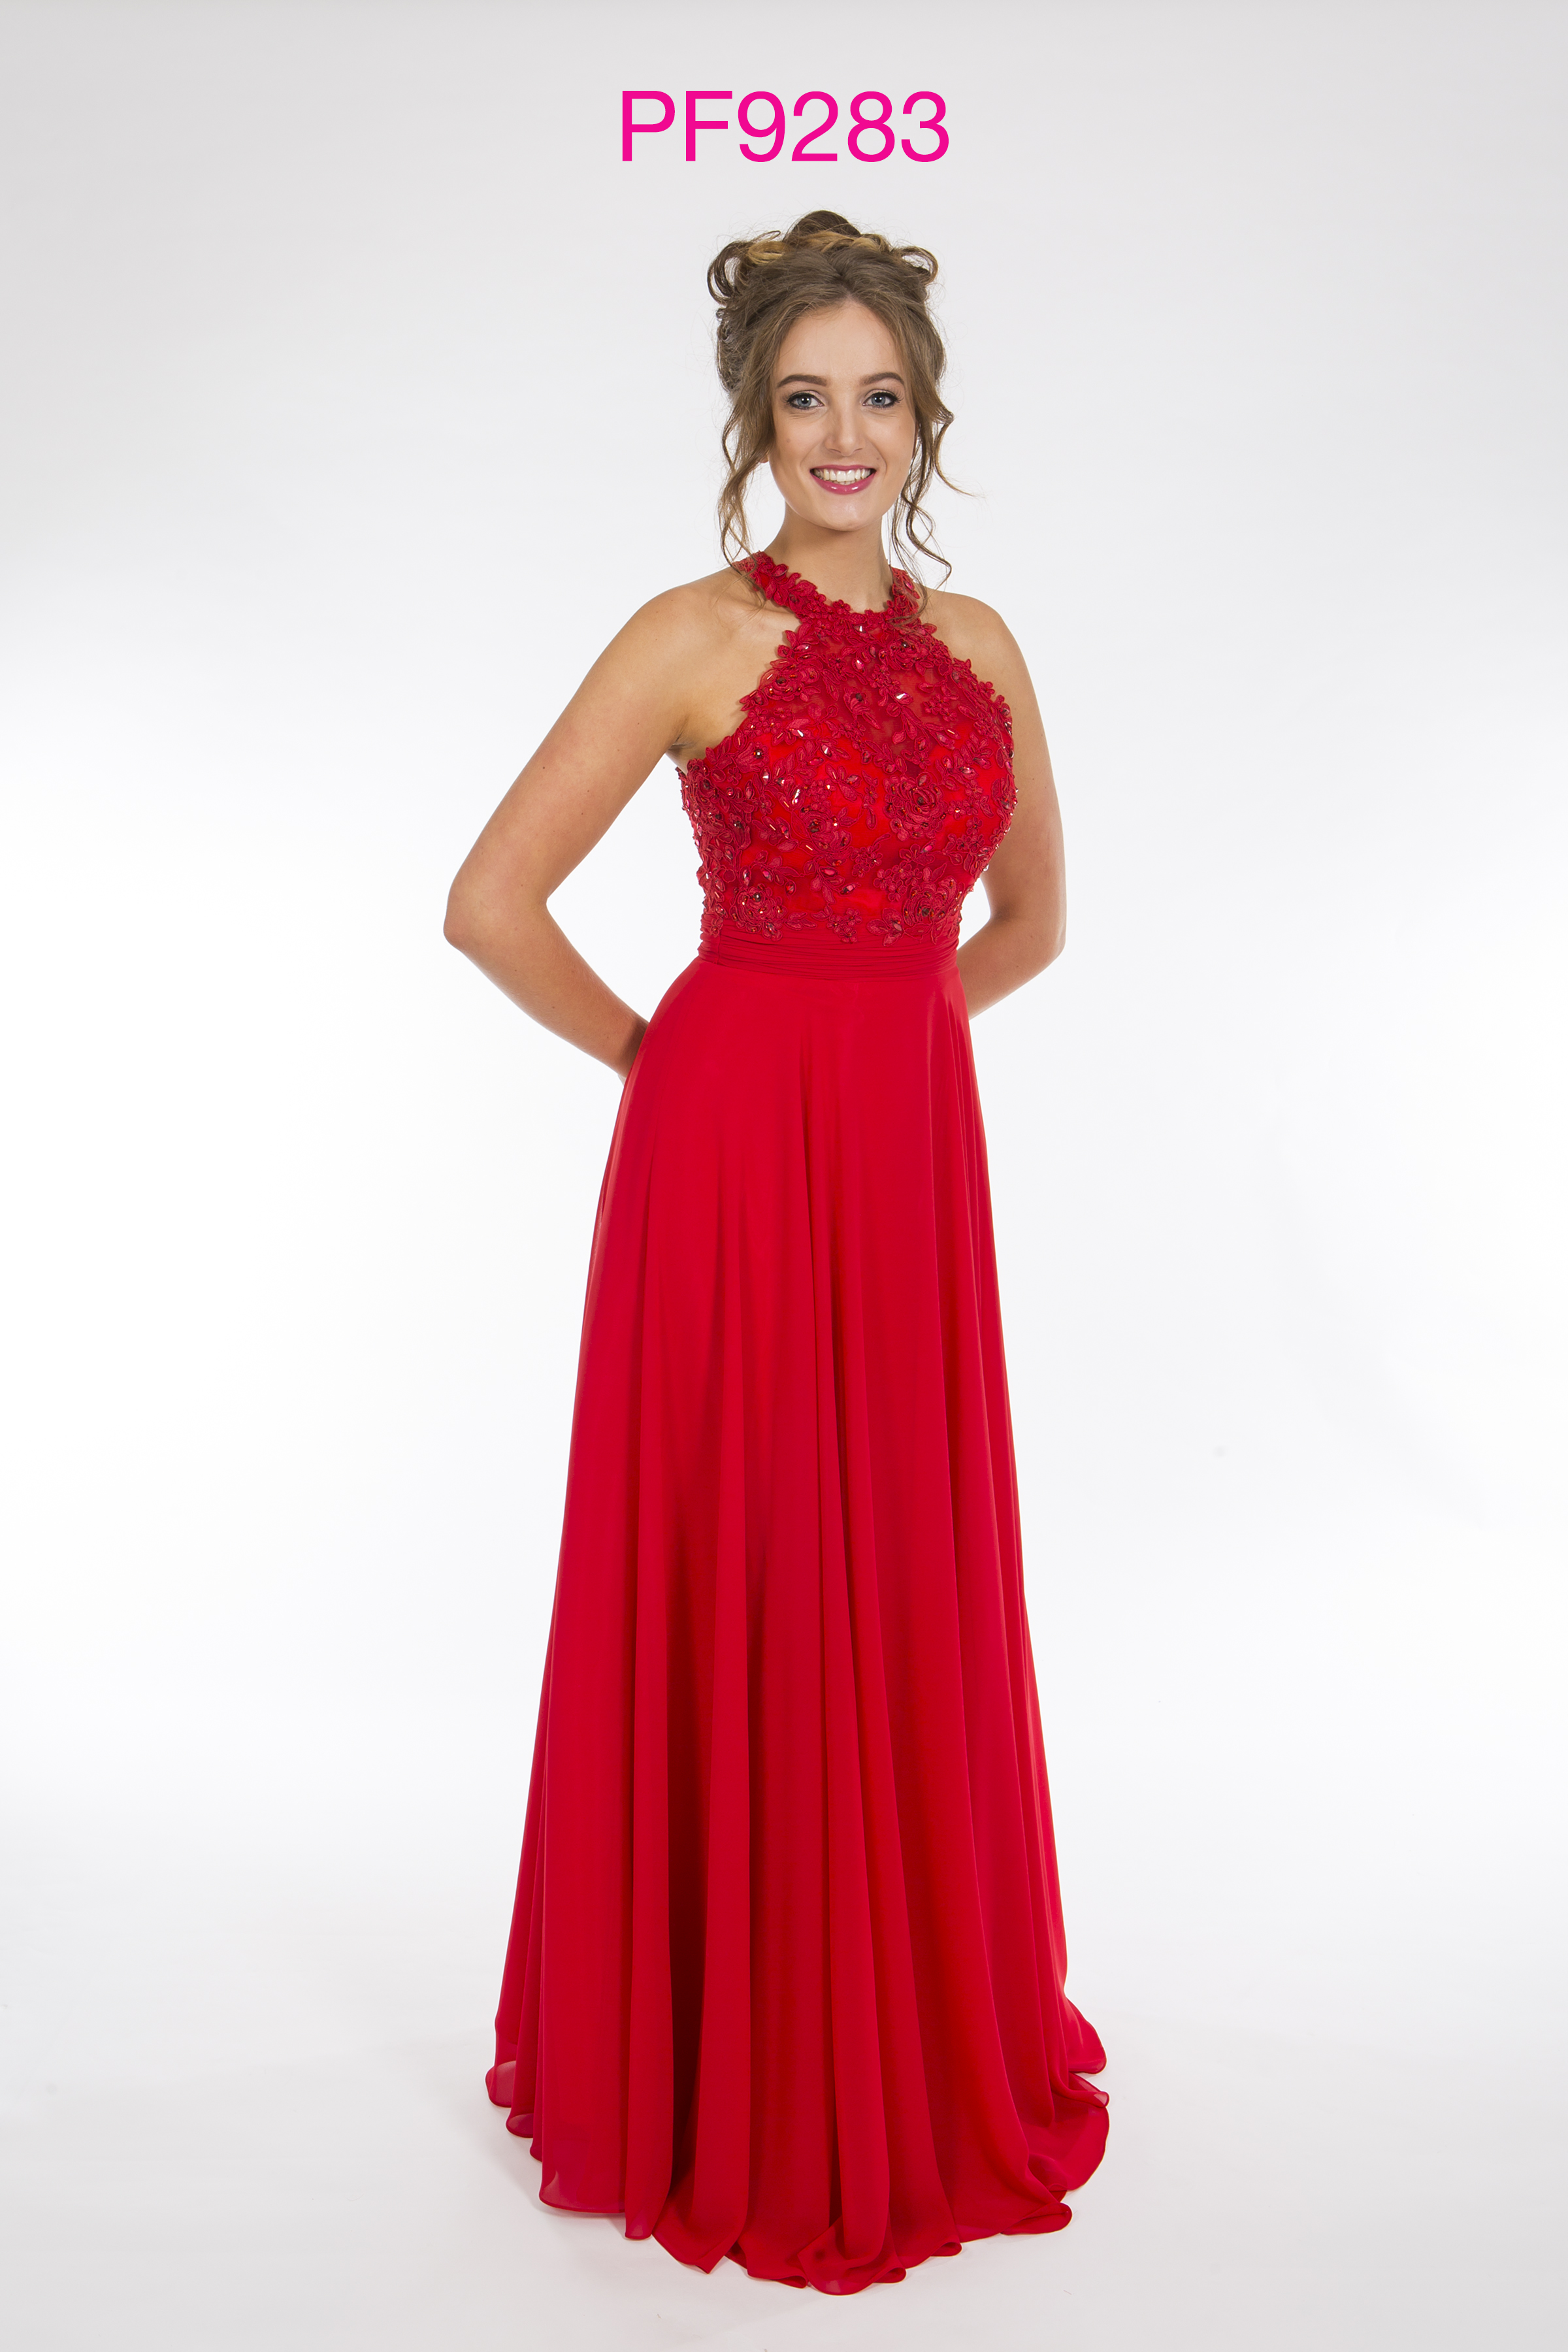 Prom Frocks PF9283 Red Prom Dress - Prom Frocks UK Prom ...Red Dresses